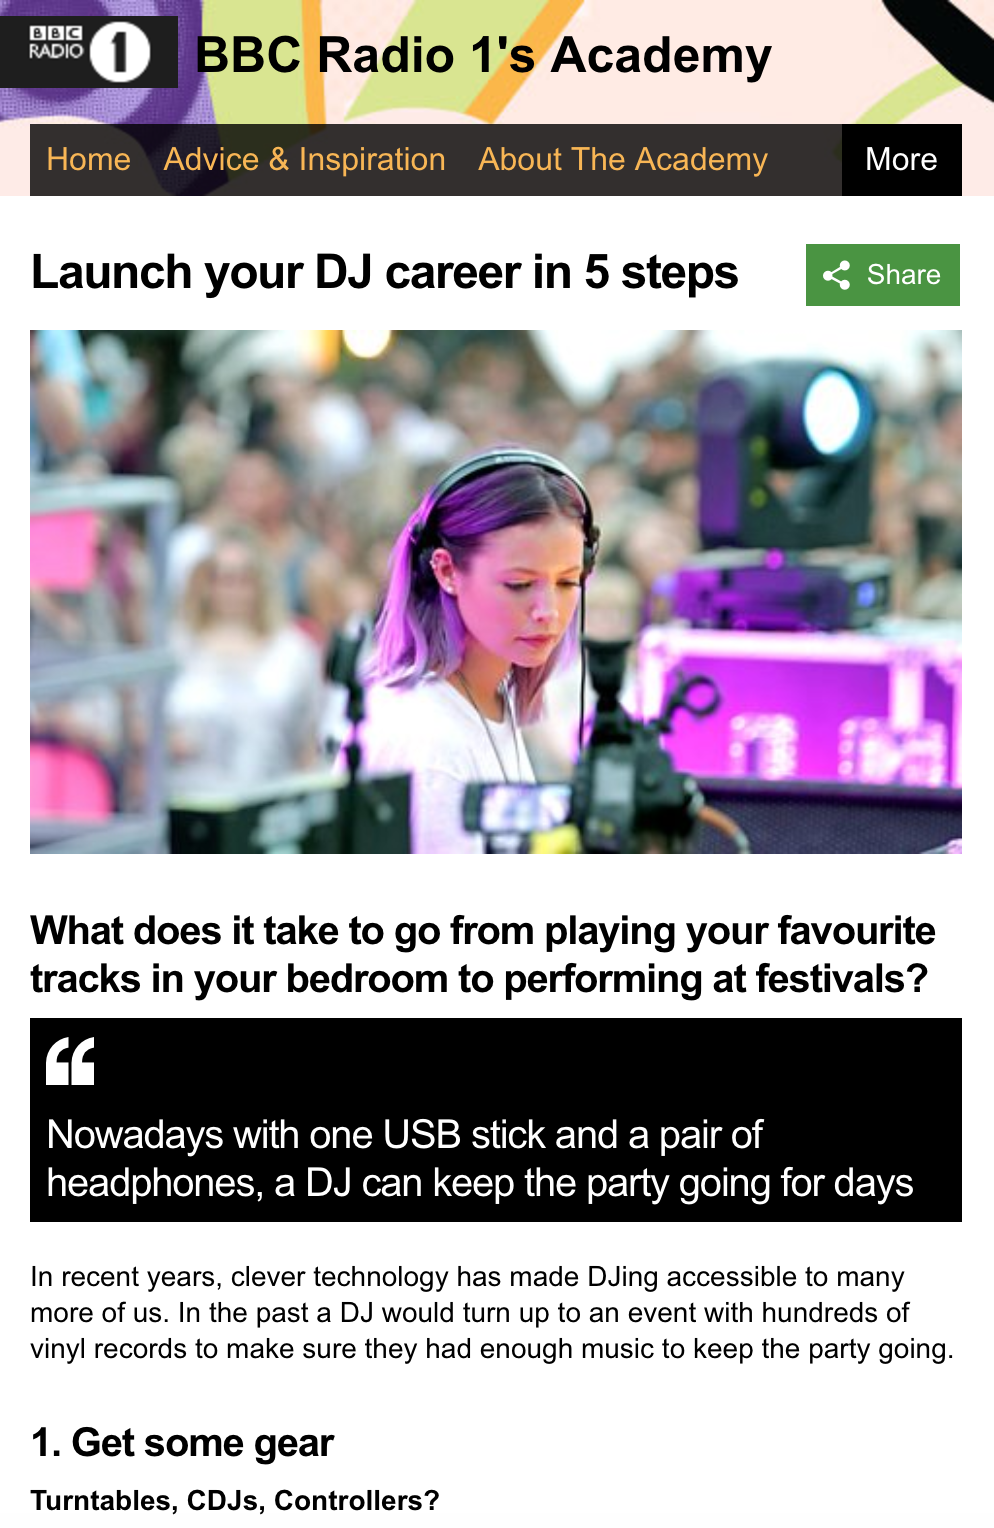 RADIO 1 ACADEMY ADVICE PAGE